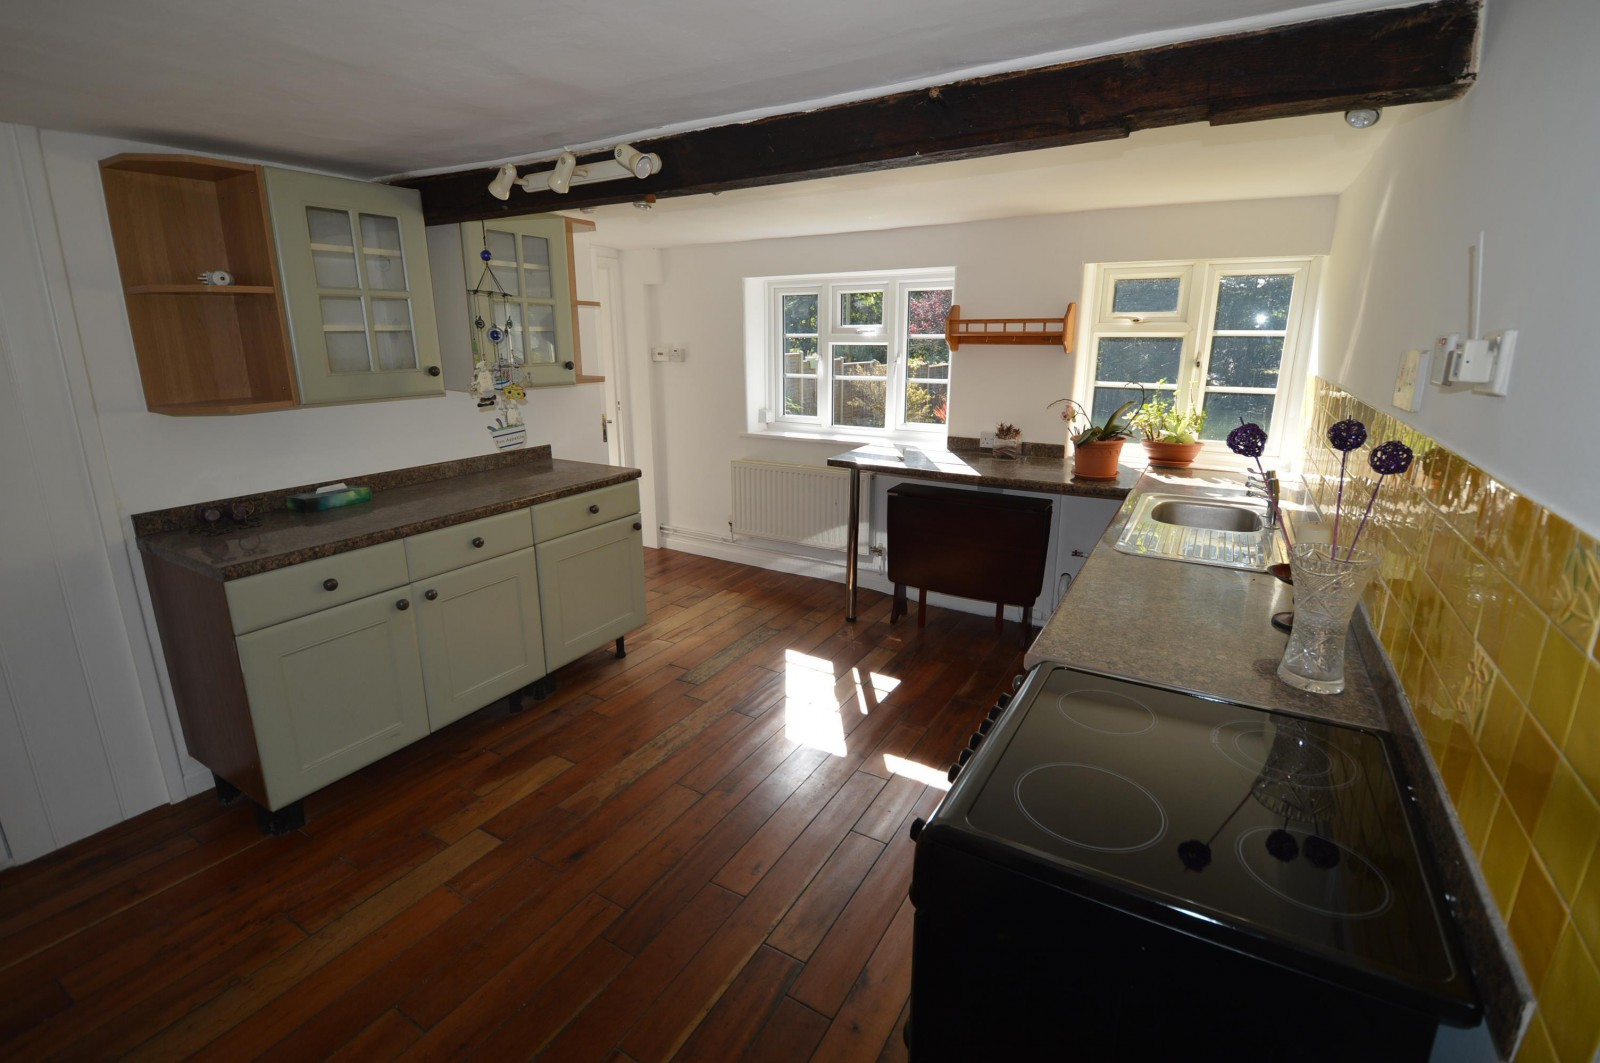 Kitchen 2 Property to let in West Meon